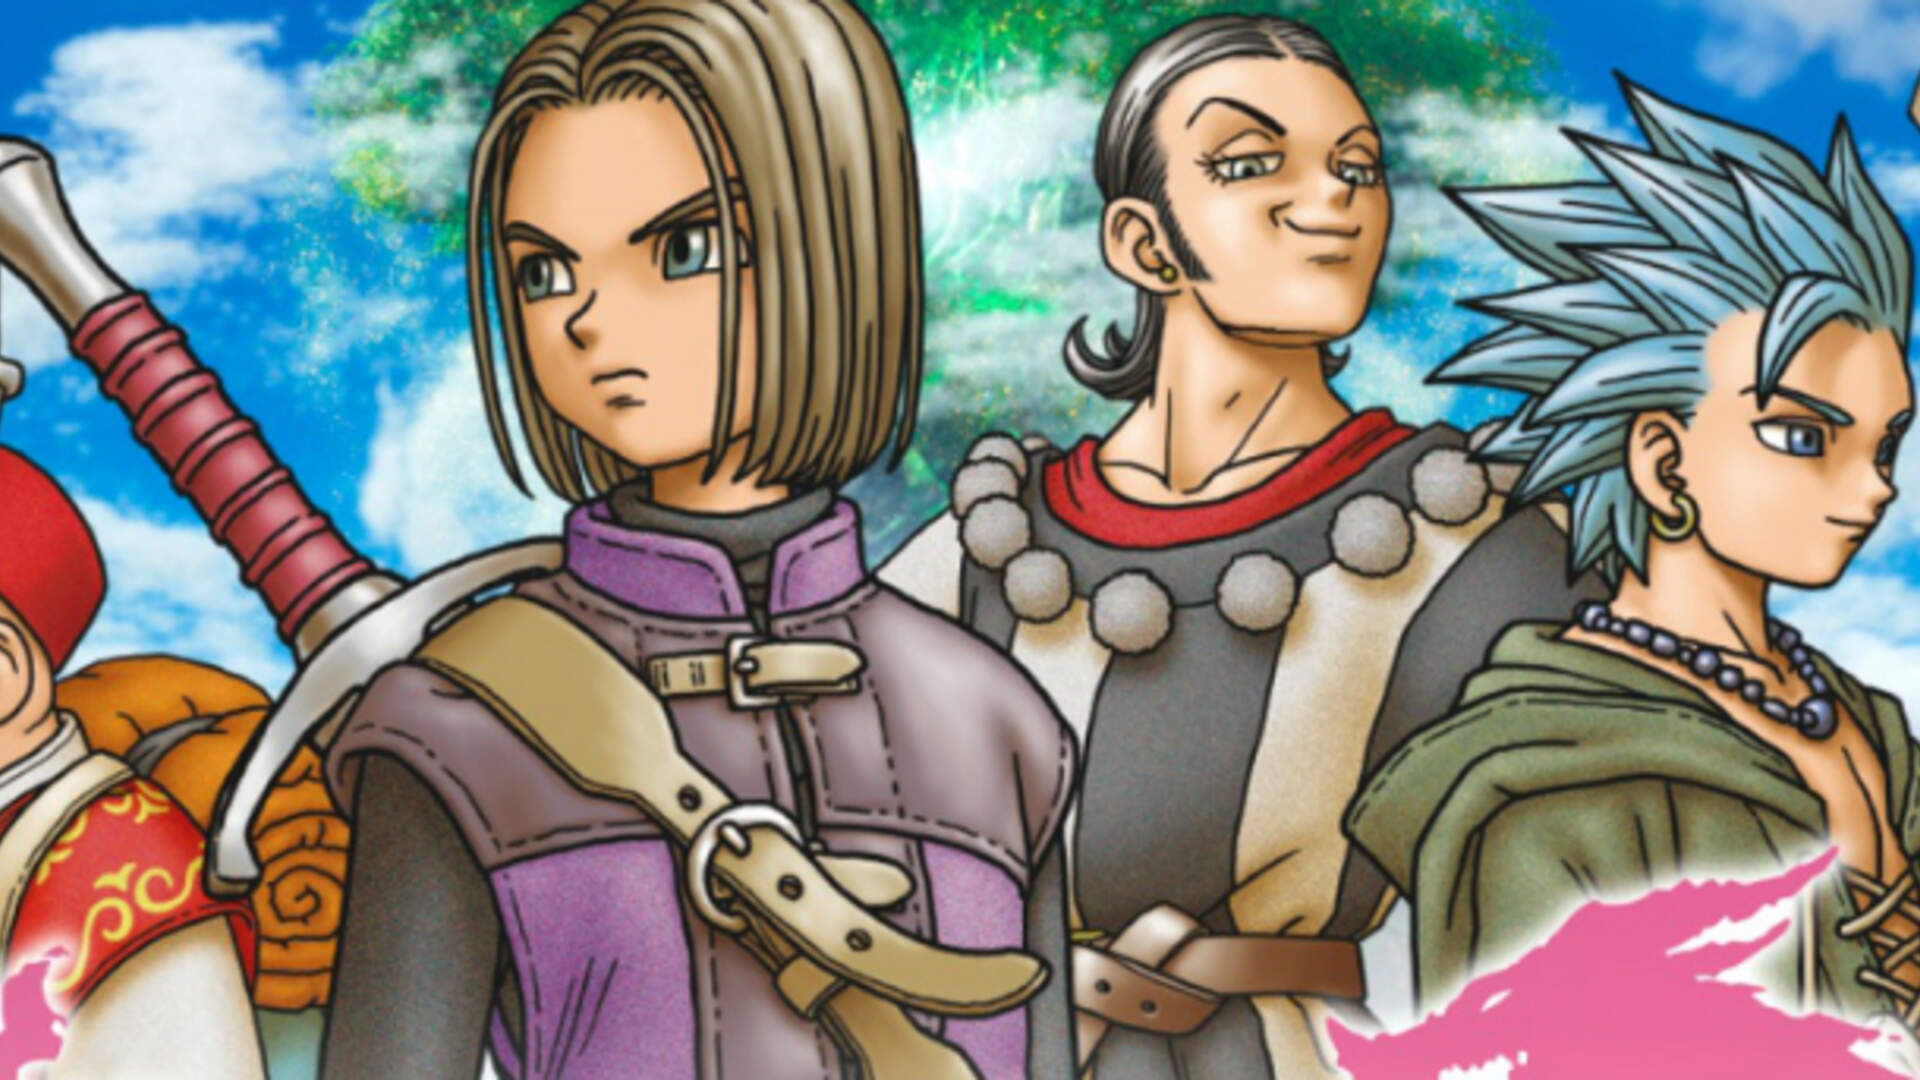 Dragon Quest XI Is a Comfortable Callback to an Older Style of JRPG